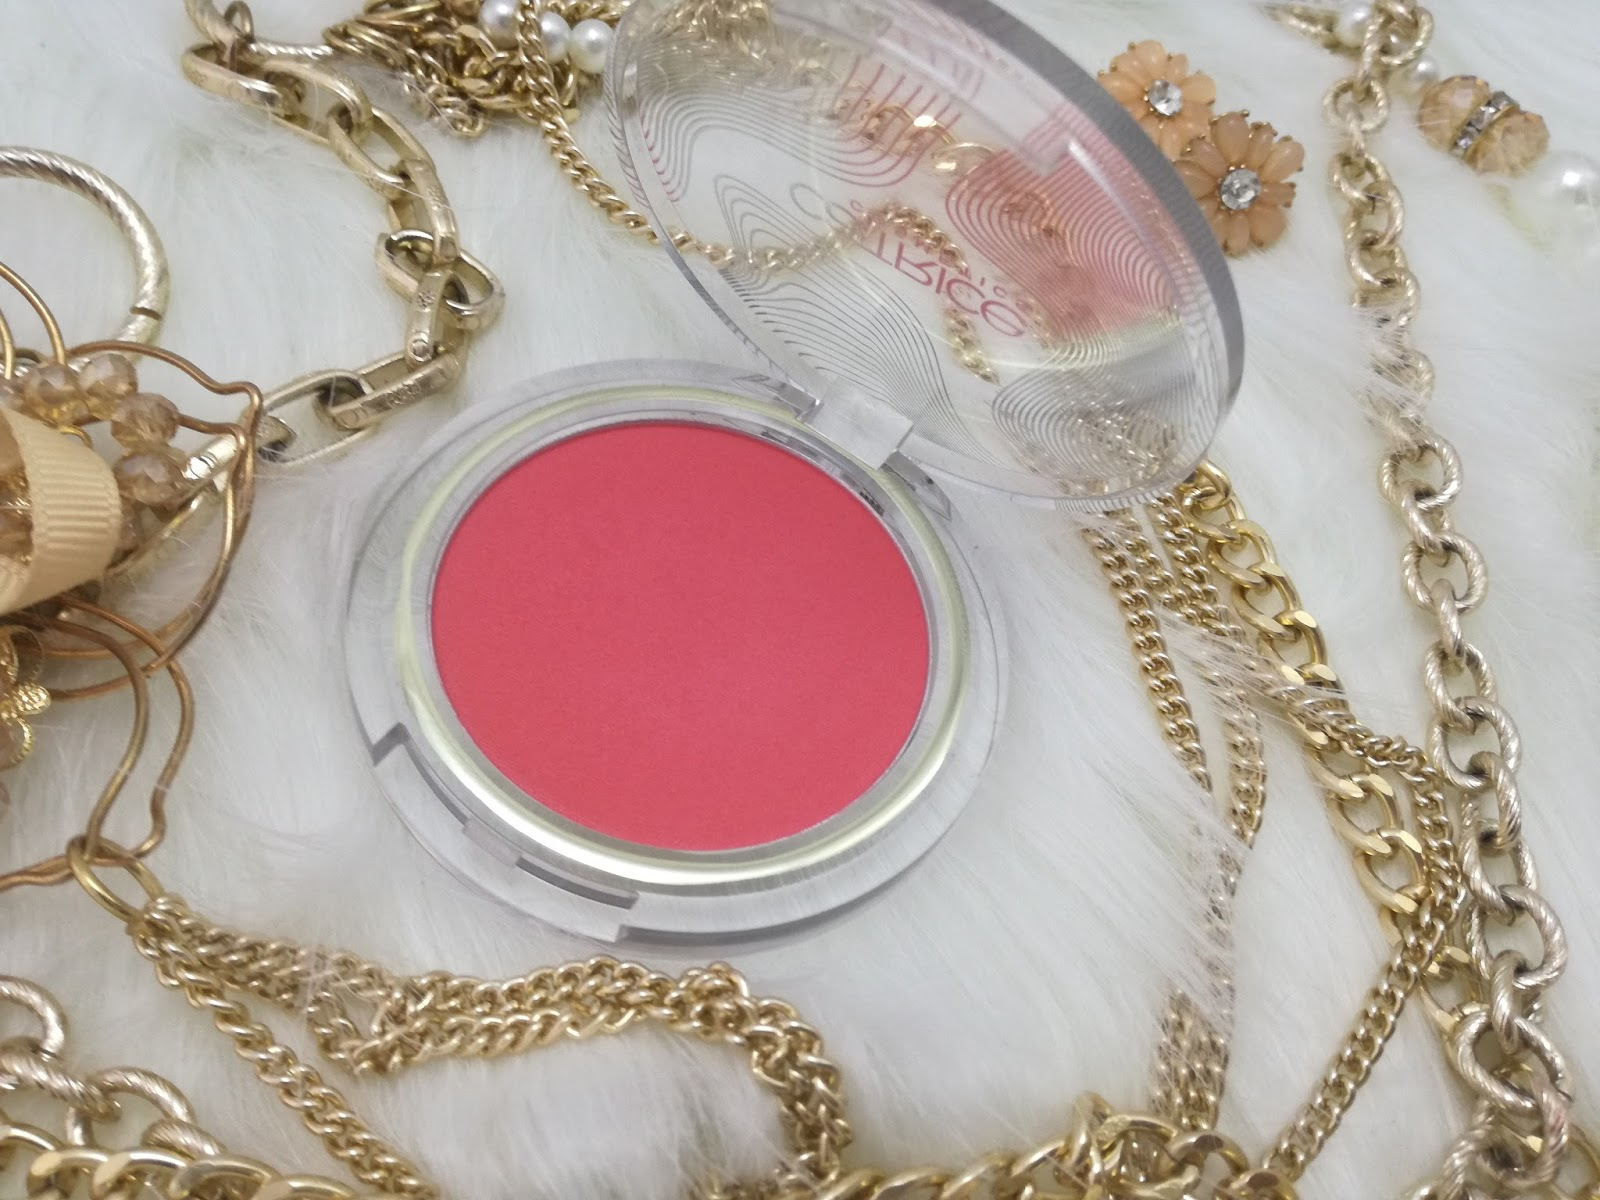 catrice-pulse-of-purism-limited-edition-pure-hibiscocoon-blush